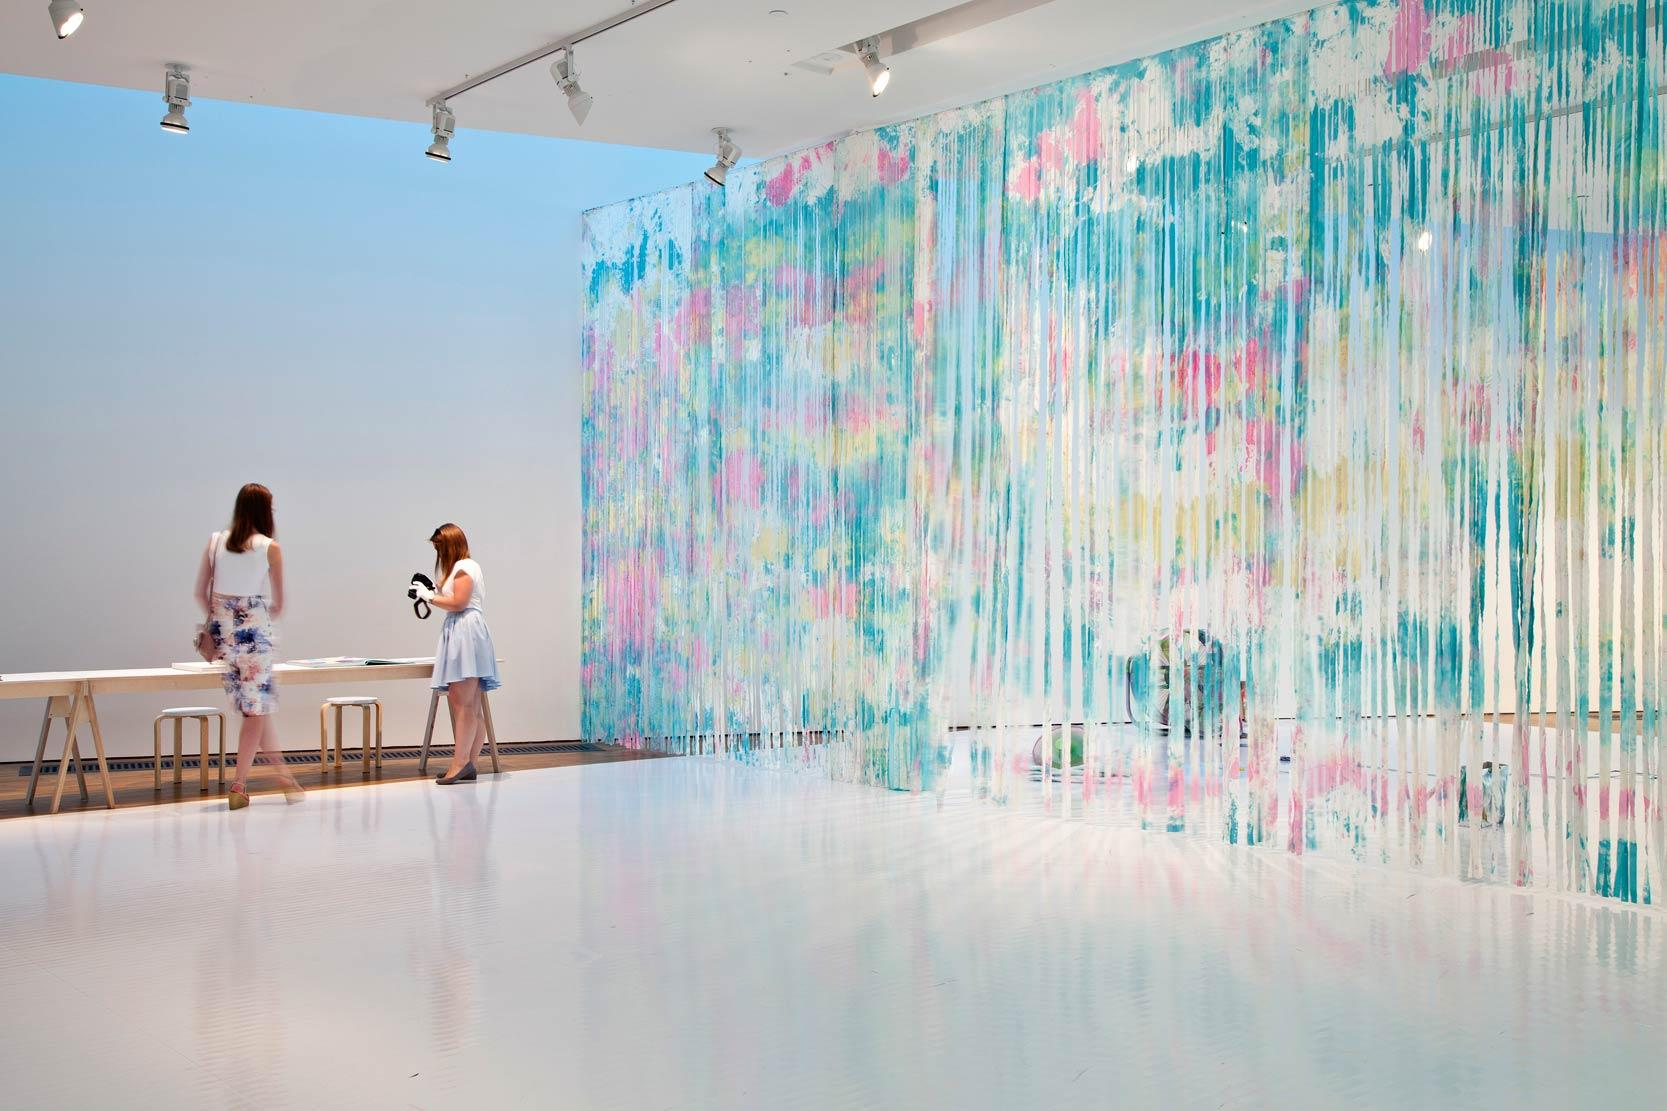 Blue Lagoon exhibition view/ Blow My Tie Dye, acrylic on canvas, spray paint on 3 fans, 2014. Photo by Anu Vahtra